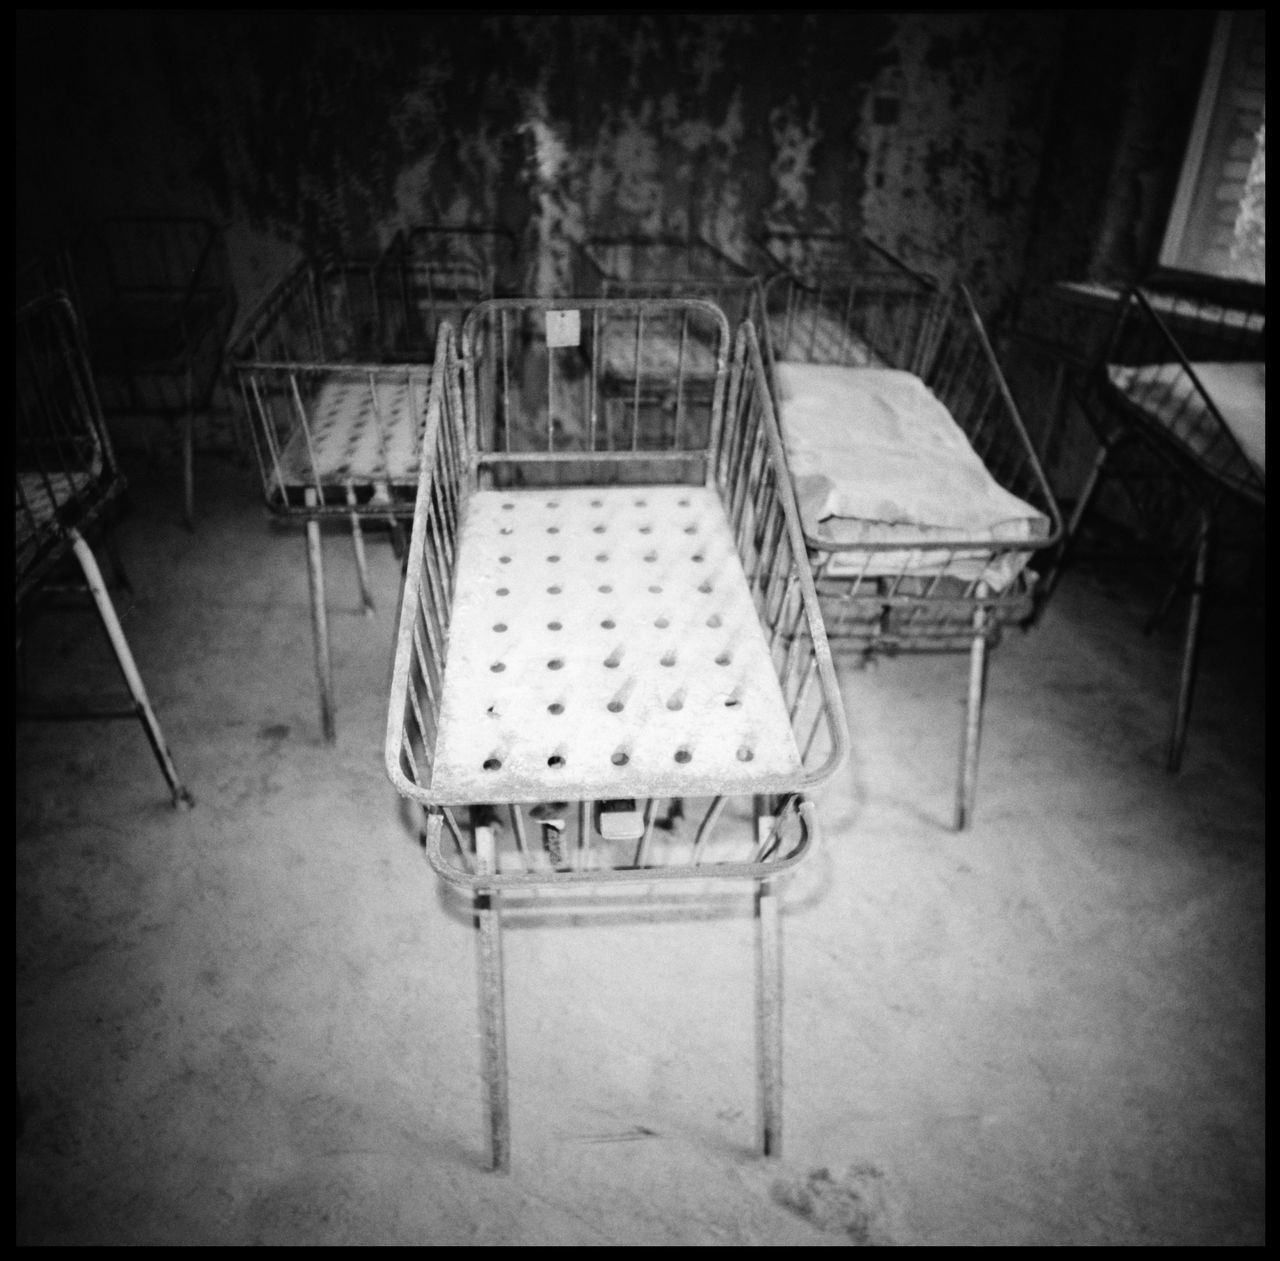 The pedeatric department of the abandonded hospital in Pripyat Abandonded Abandonded Baby Cradly Abandonded Building Abandonded Hospital Analogue Photography Baby Cradle Black And White Photography Chernobyl Chernobyl Catastrophy Chernobyl Exclusion Zone Clinic Cyrilic Death Eerie Clinic Indoors  No People Nuclear Blast Pediatrics Pot Pripyat Pripyat Hospital Scary Hospital Soviet Union Spooky Hospital White Wash The Photojournalist - 2017 EyeEm Awards The Photojournalist - 2017 EyeEm Awards